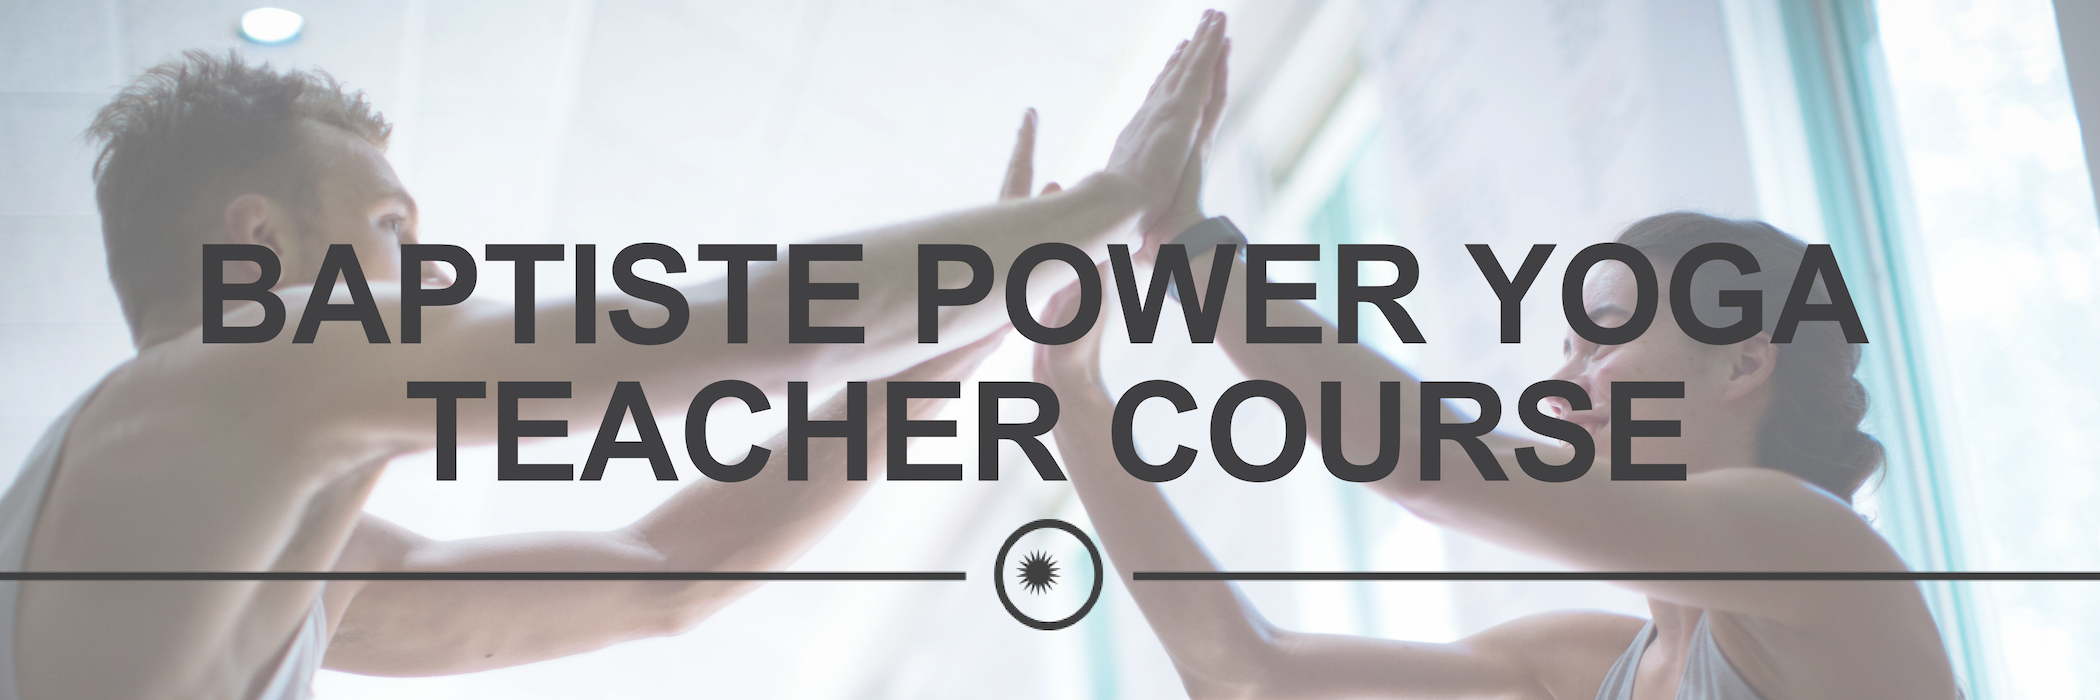 Lumi Power Yoga | BPY Teacher Course